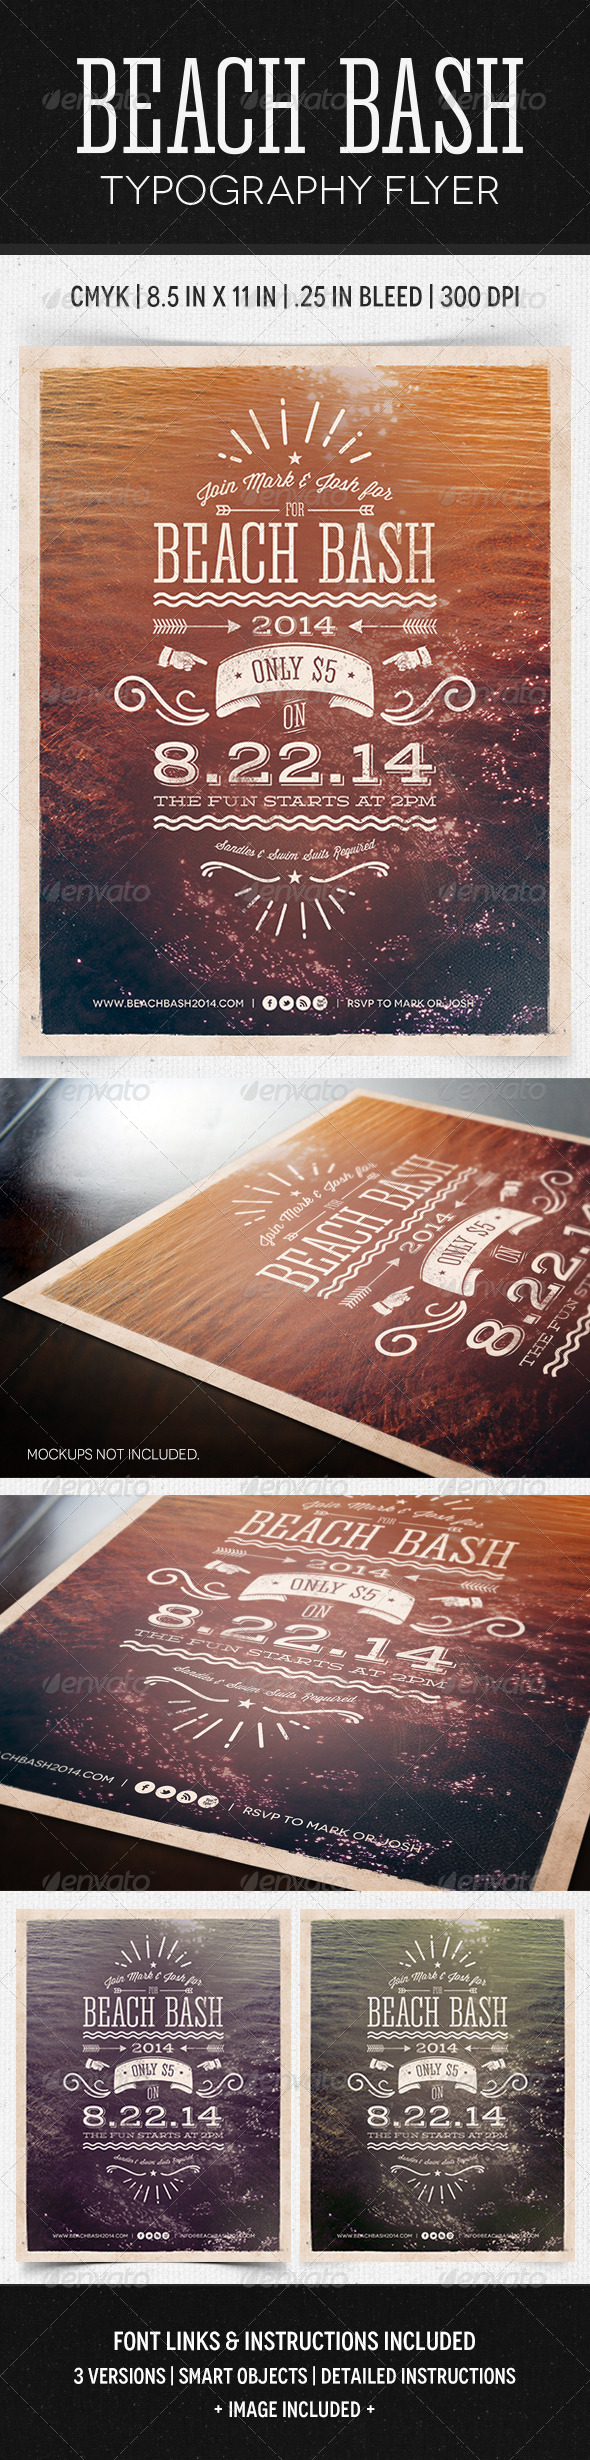 GraphicRiver Beach Bash Typographic Flyer 5136161